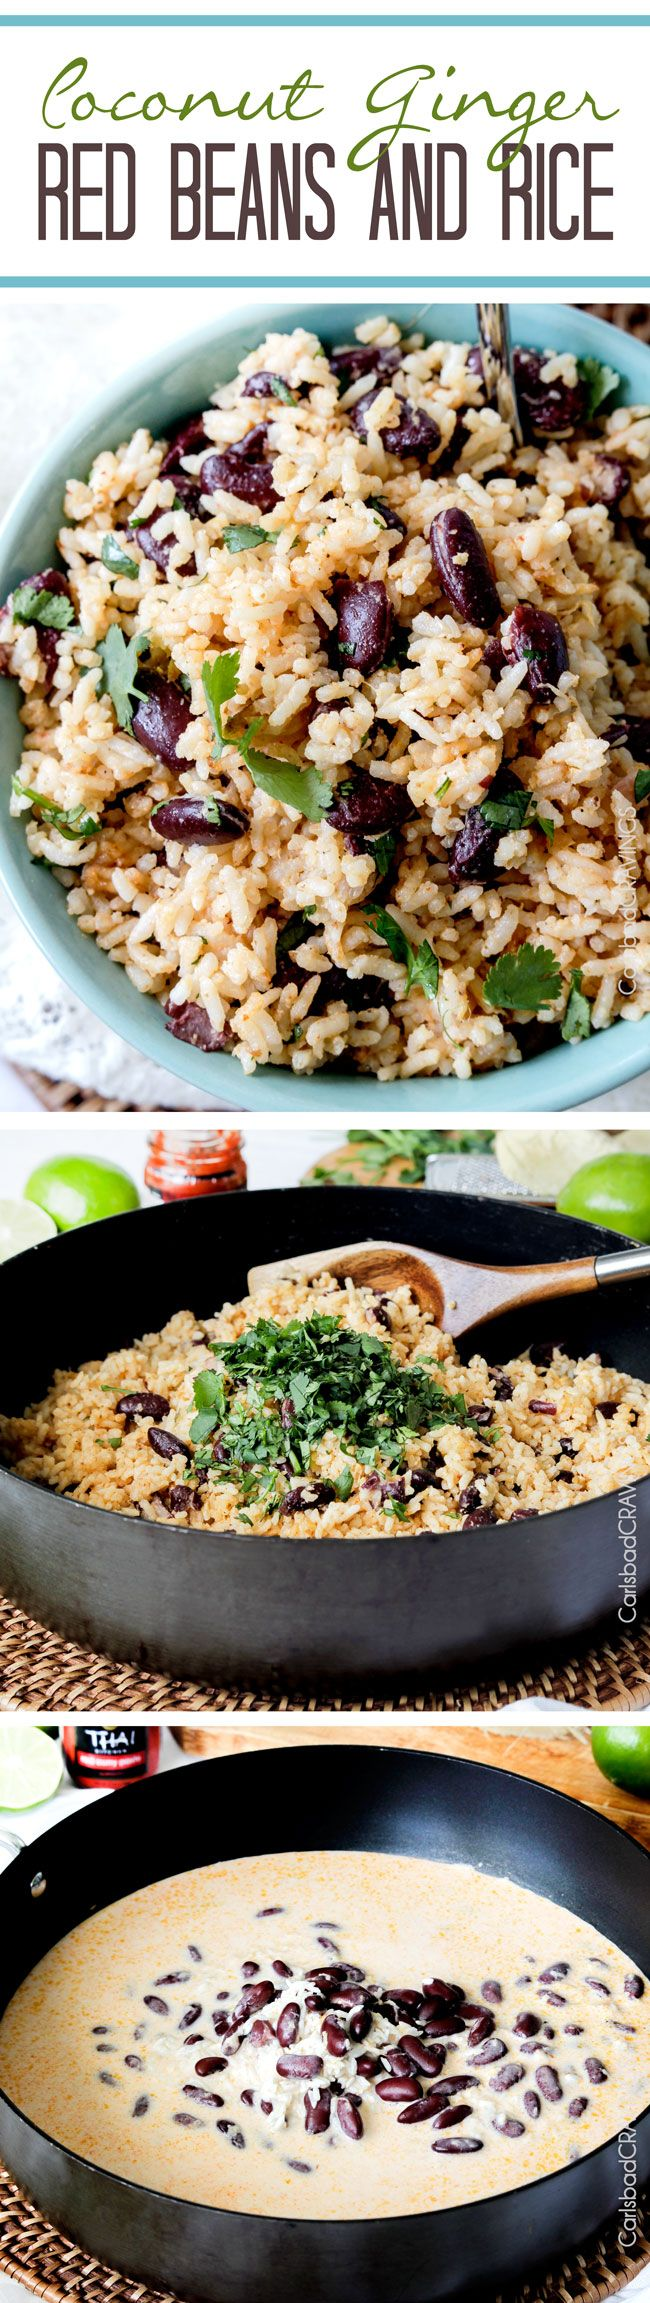 Coconut Ginger Red Beans & Rice